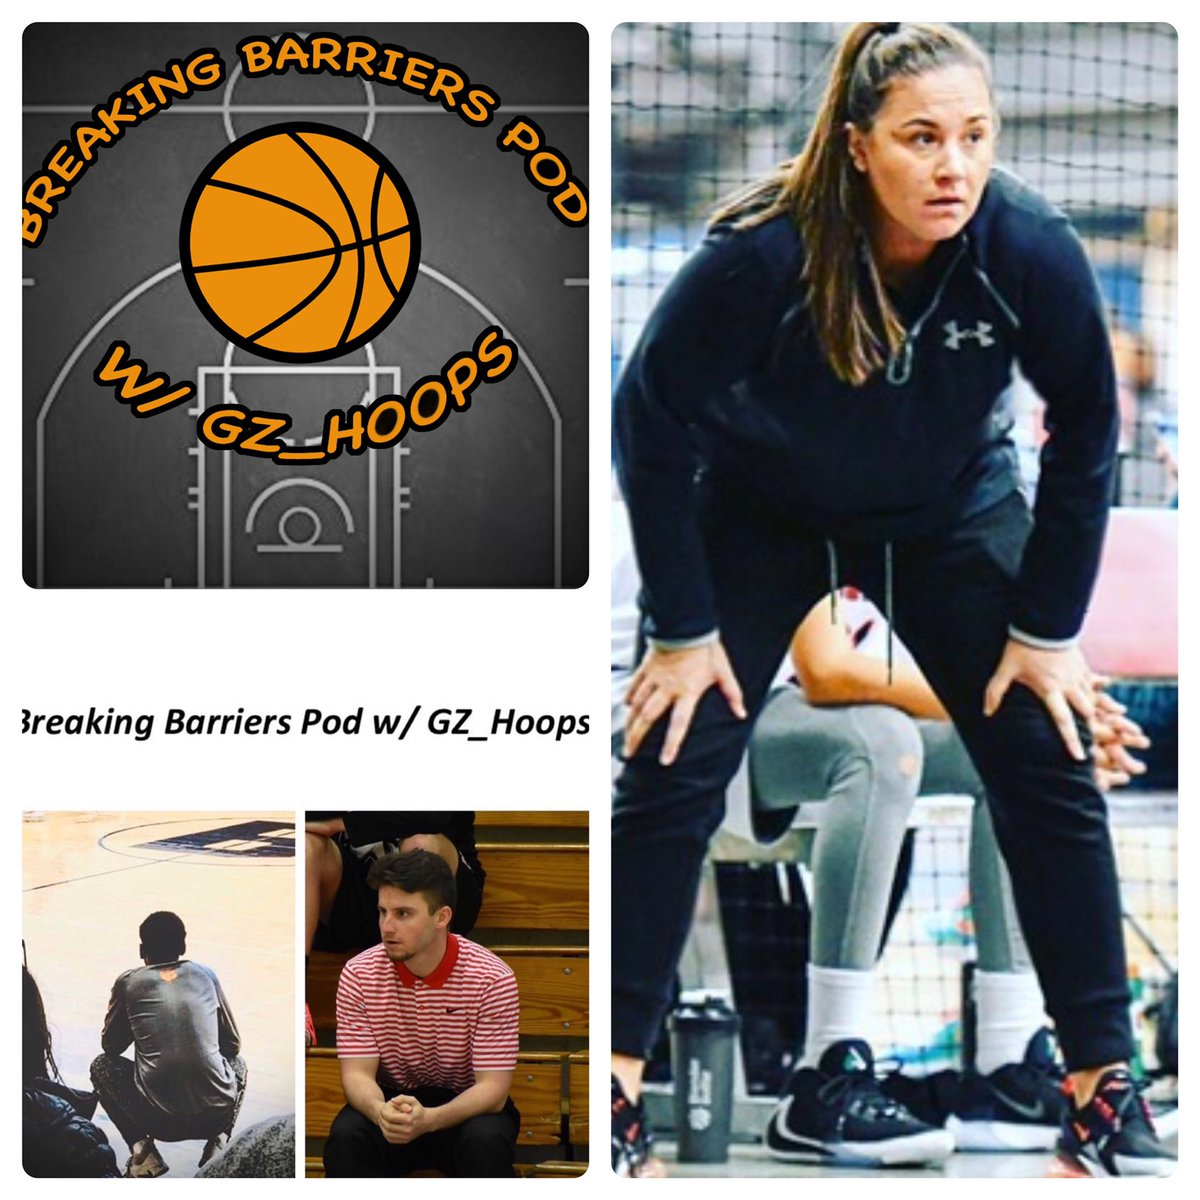 https://t.co/z4wQarNmqn @GzHoops @Coach_KDini @NY_ExtremeHoops  the follow up Ep 🔥 and she's a baller go check for yourself https://t.co/FPZY0bWJPH